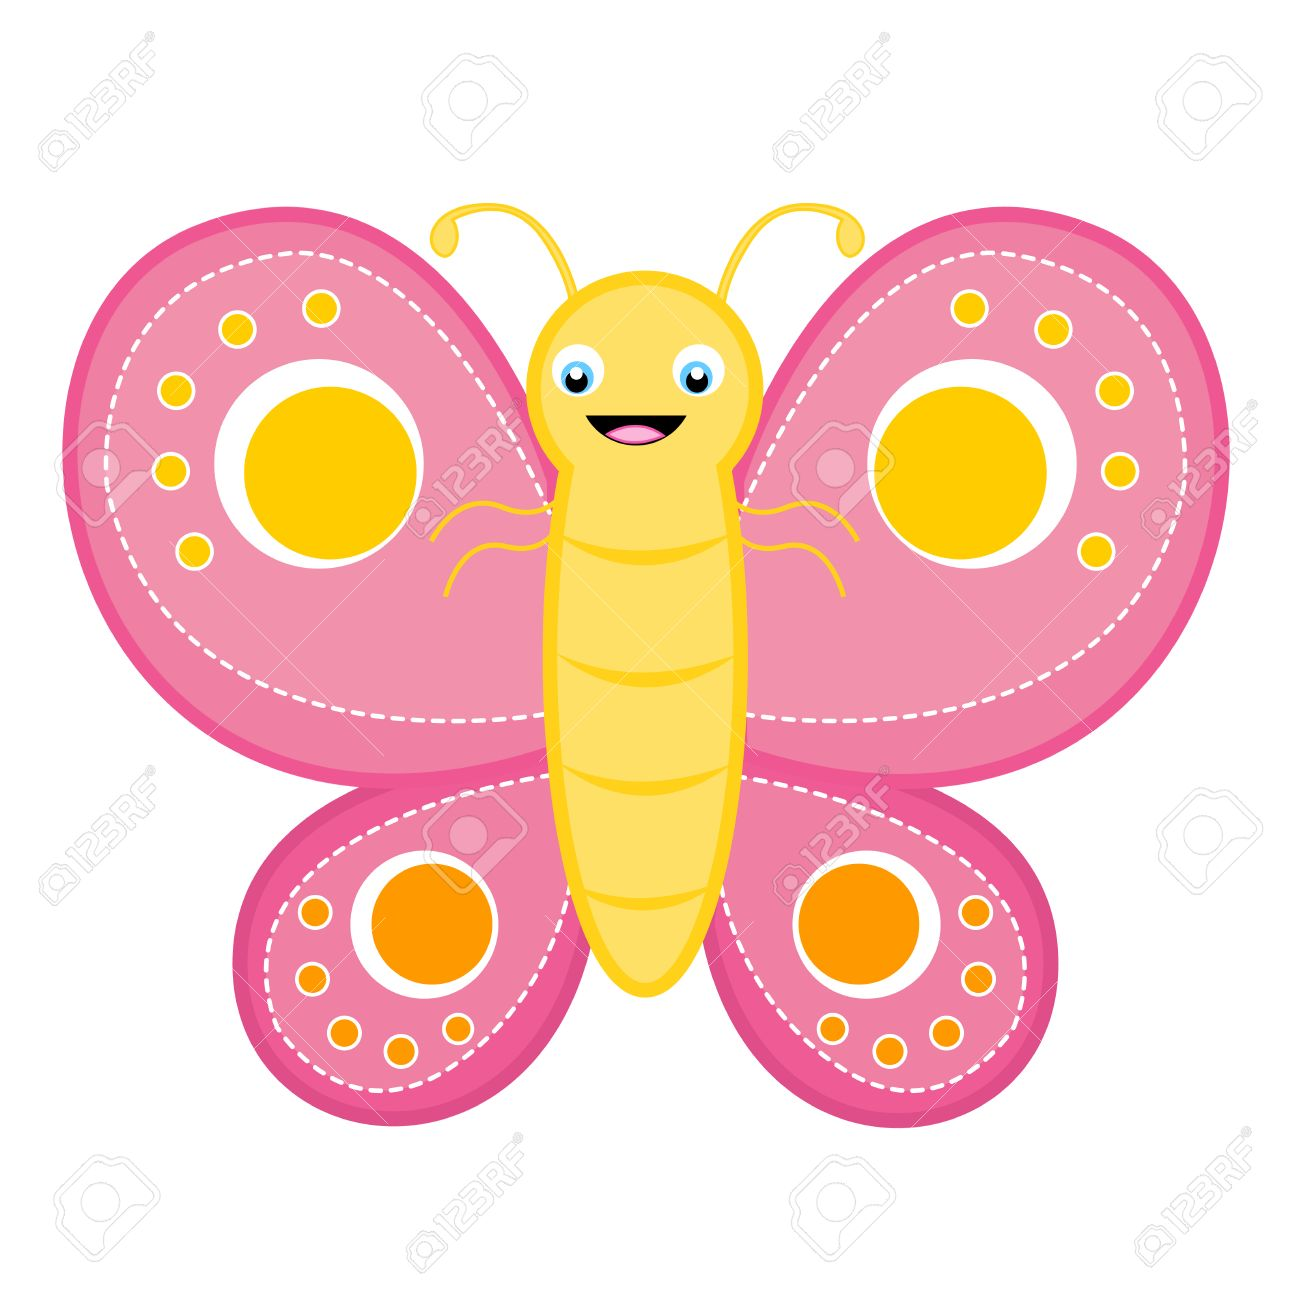 Cute happy smiling butterfly clip art isolated on white background.